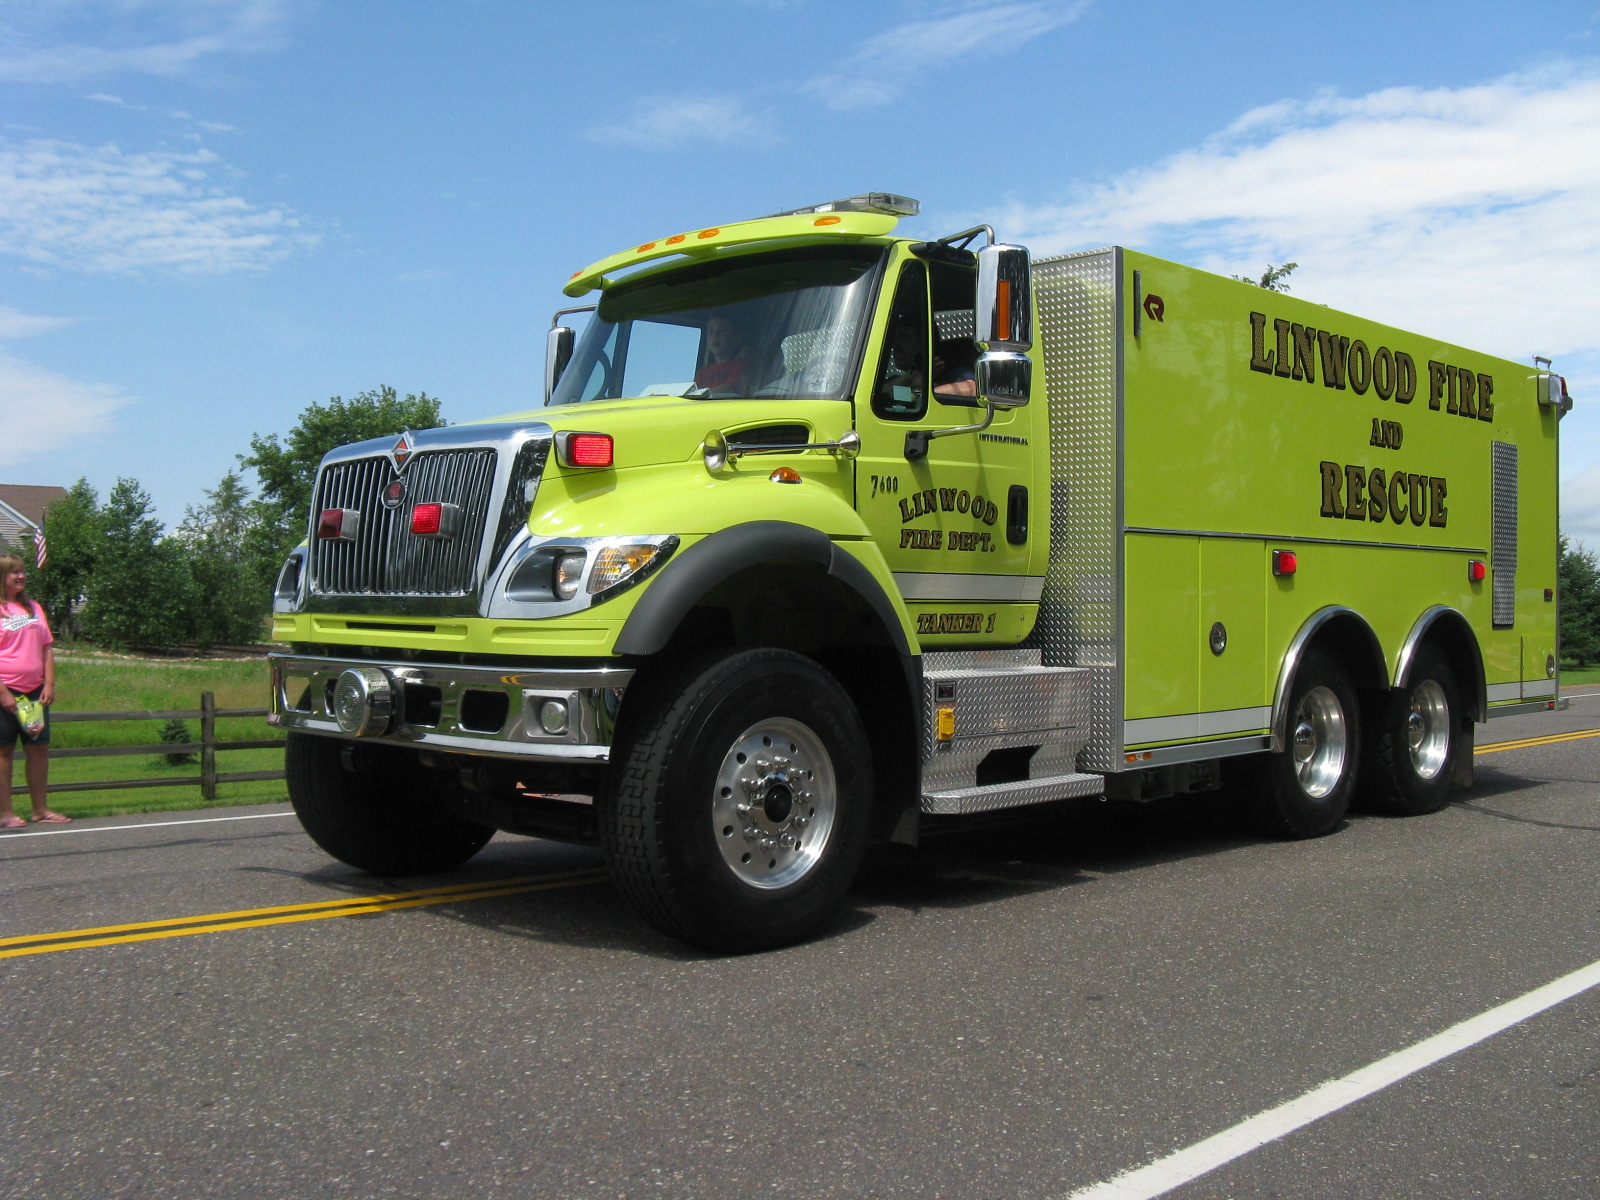 Linwood Fire Department